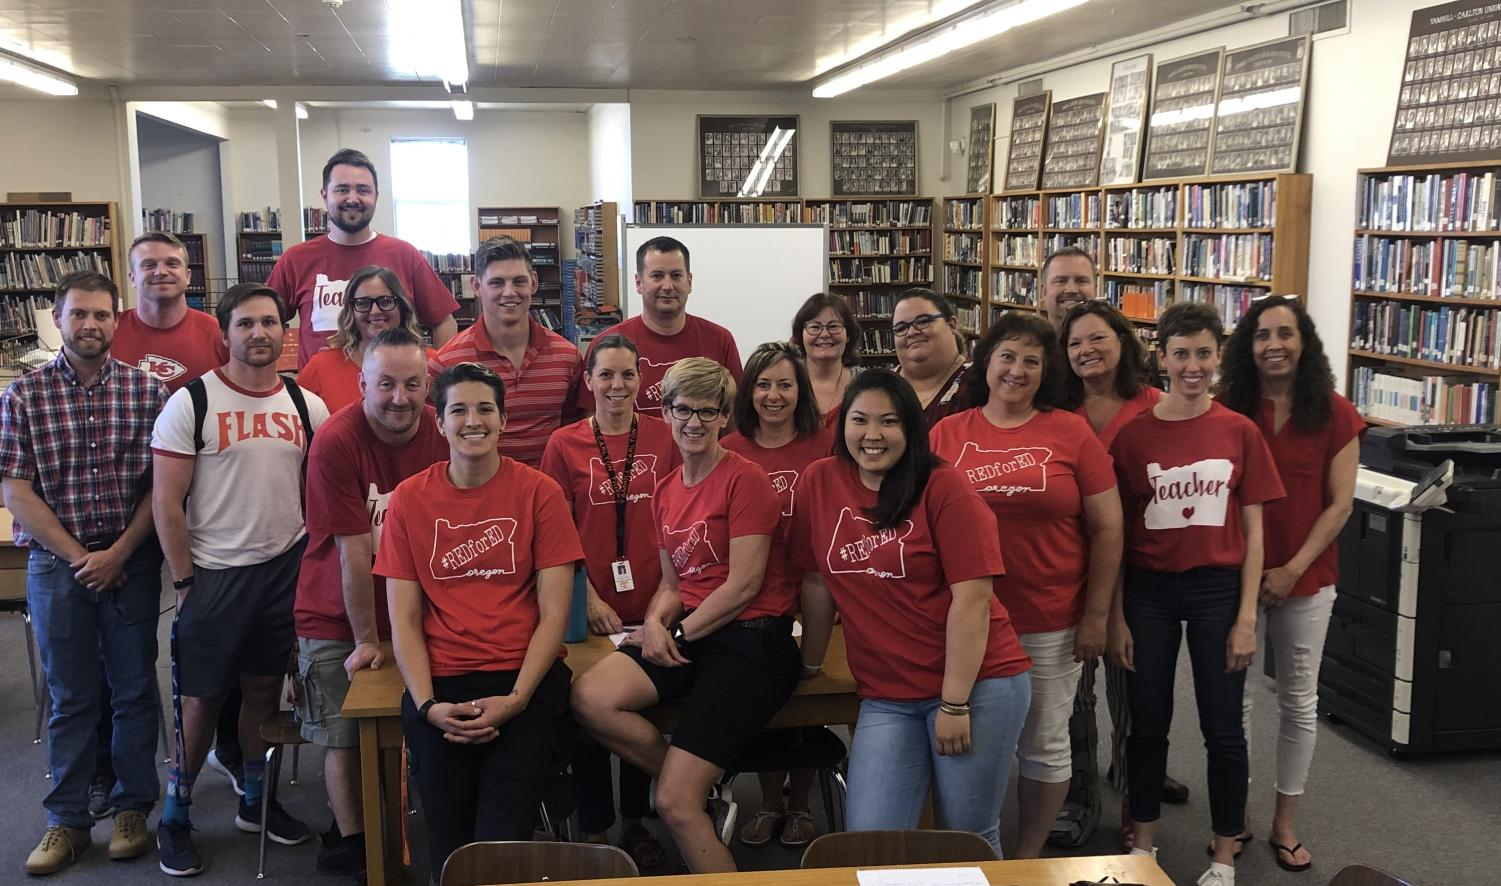 YCHS staff supporting #redfored photo credit to Ms. McKinney